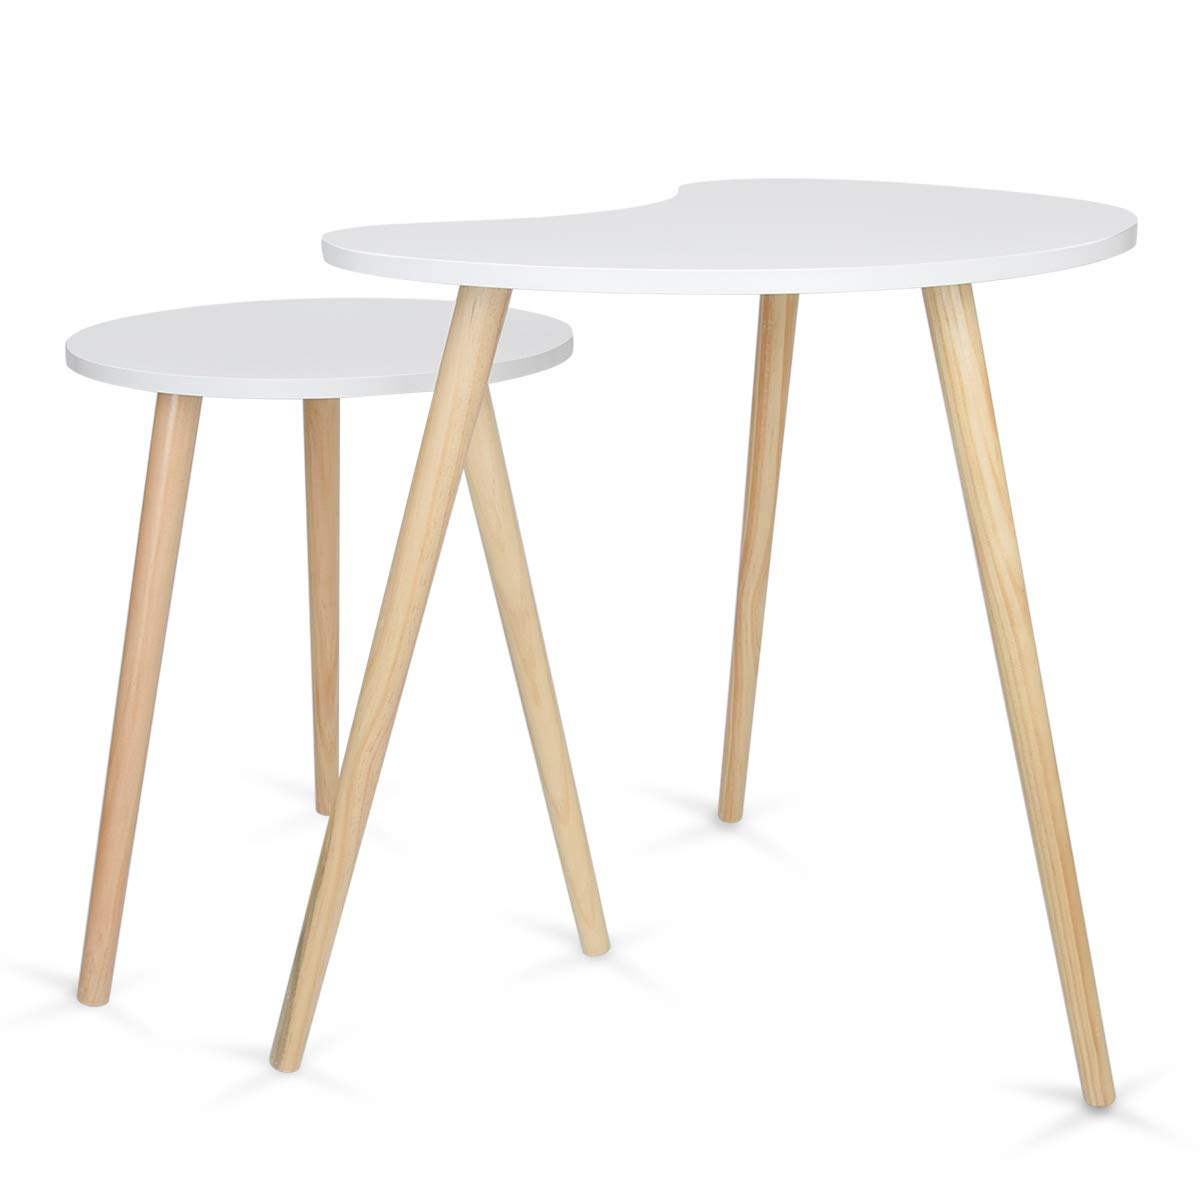 Home-Man Nesting Coffee End Tables Modern Furniture Decor Side Table for Living Room Bedroom Balcony Home and Office, Nature White Pea Shape Tabletop Set of 2 by Home-Man